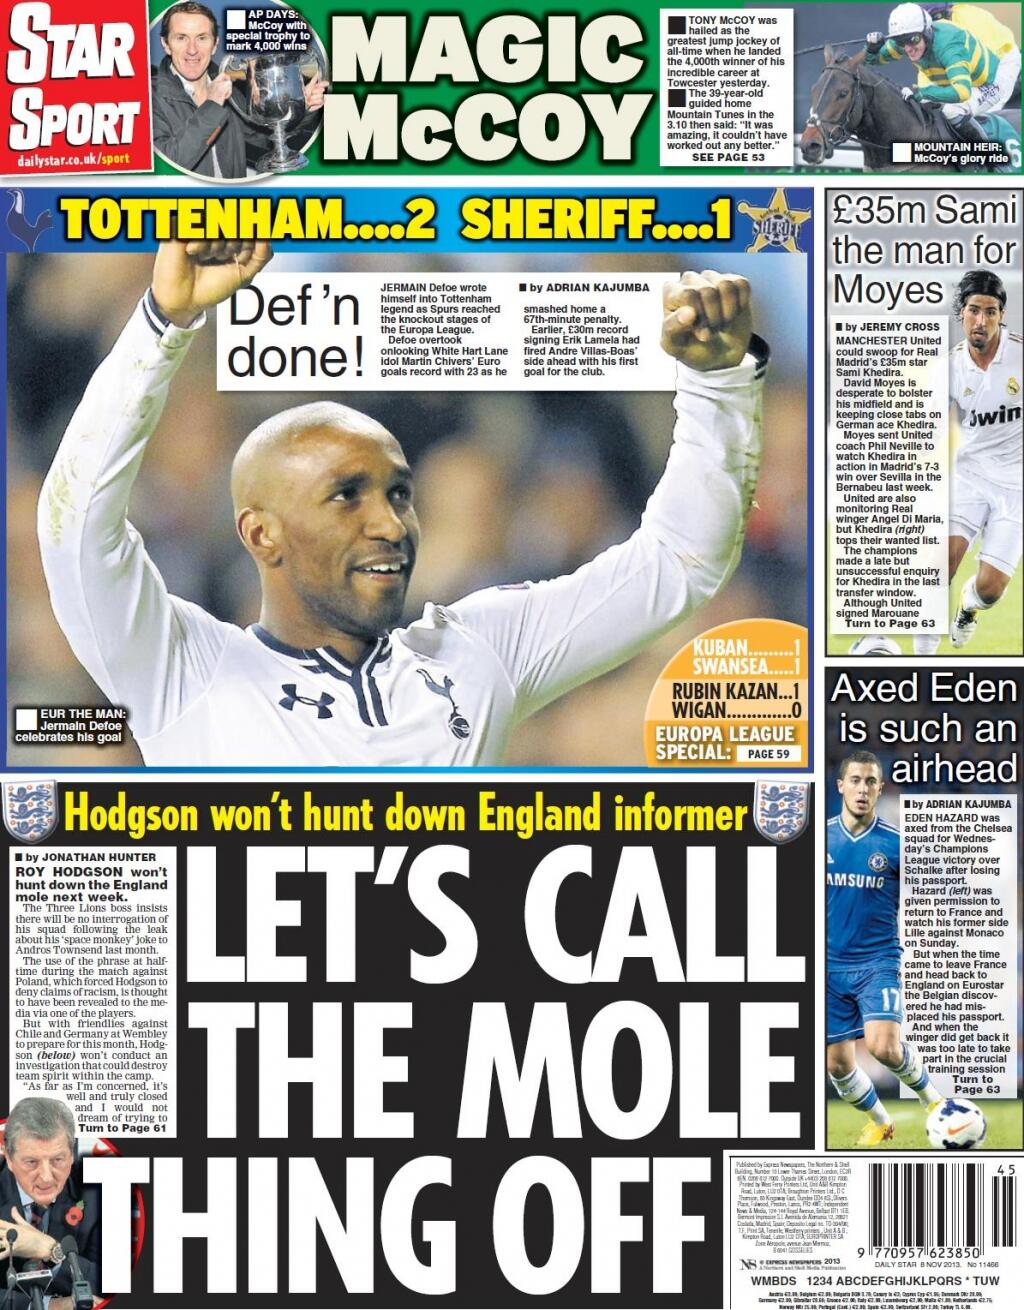 Friday Star Sport: Lets Call The Mole Thing Off, Hodgson wont hunt down informer